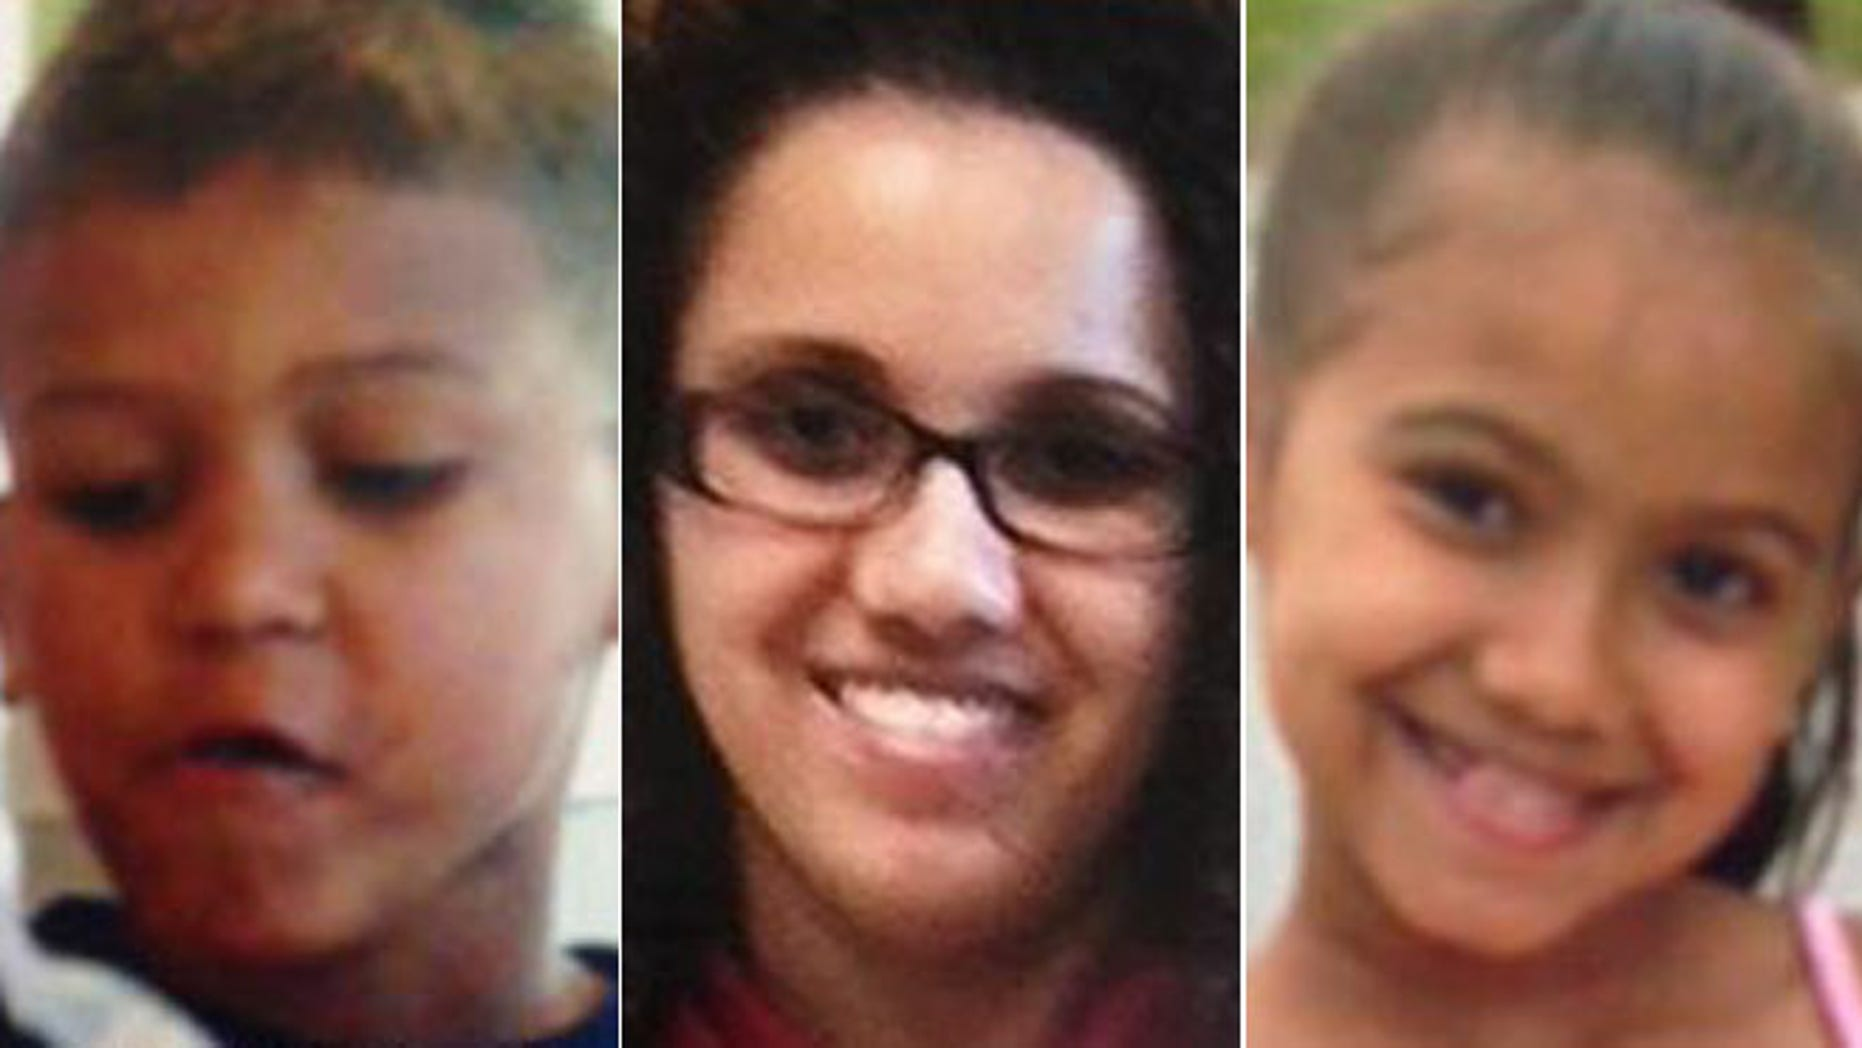 These undated photos show Michael Otto, 8, Yessenia Suarez, 28, and Thalia Otto, 9, who were reported missing after family members requested a well-being check on Wednesday.